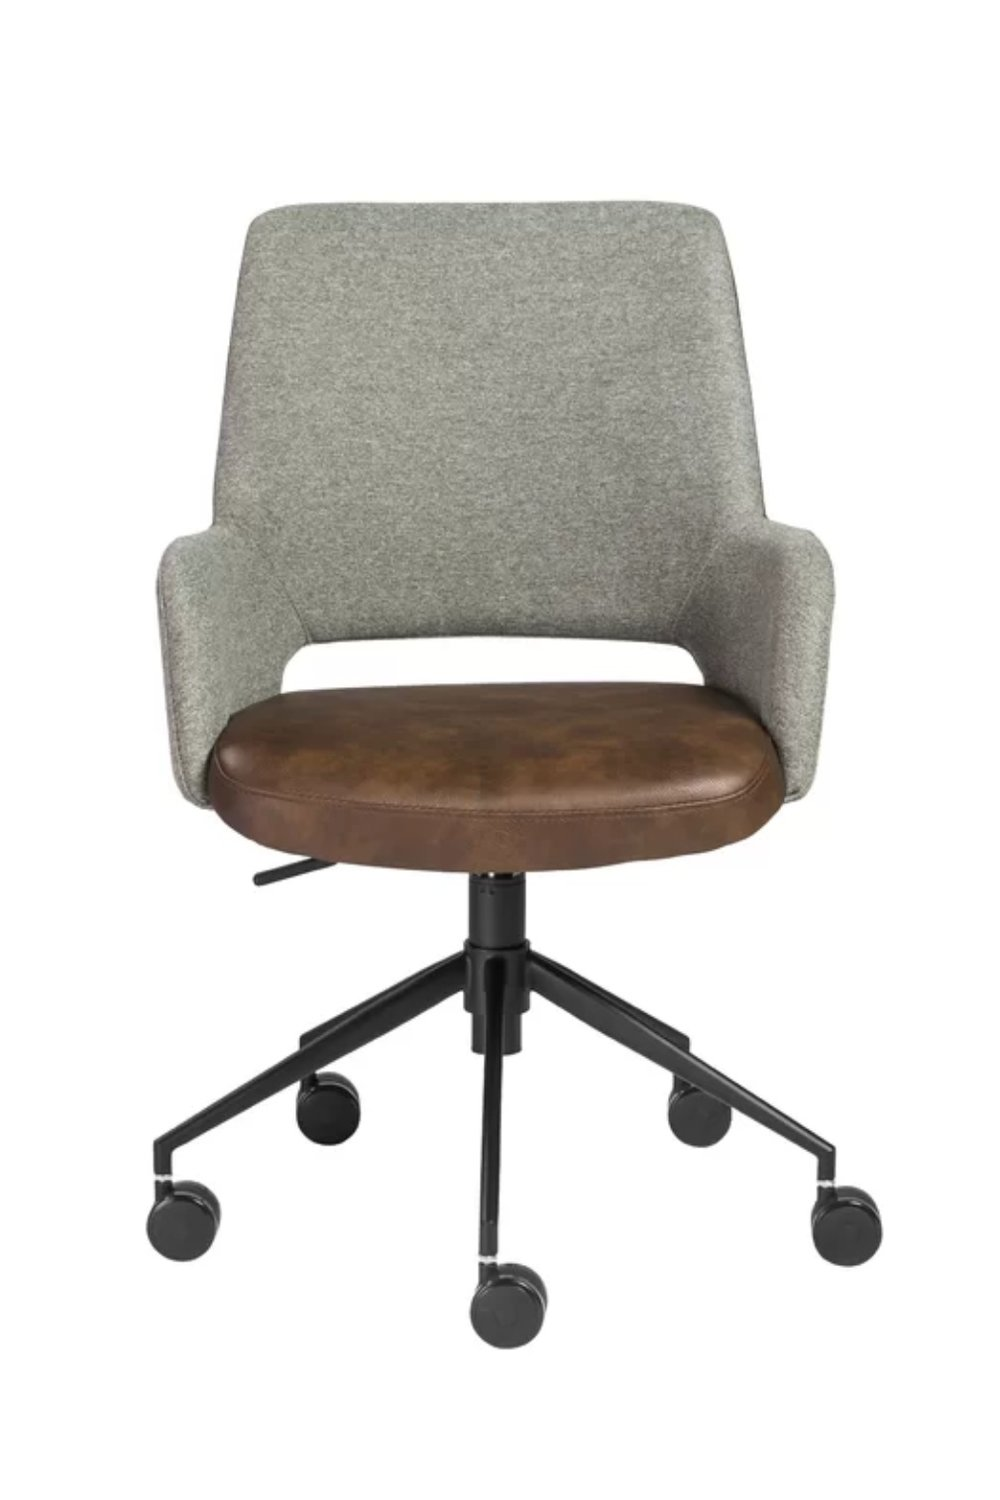 Amini Grey and Brown Leather Office Chair with Black Legs